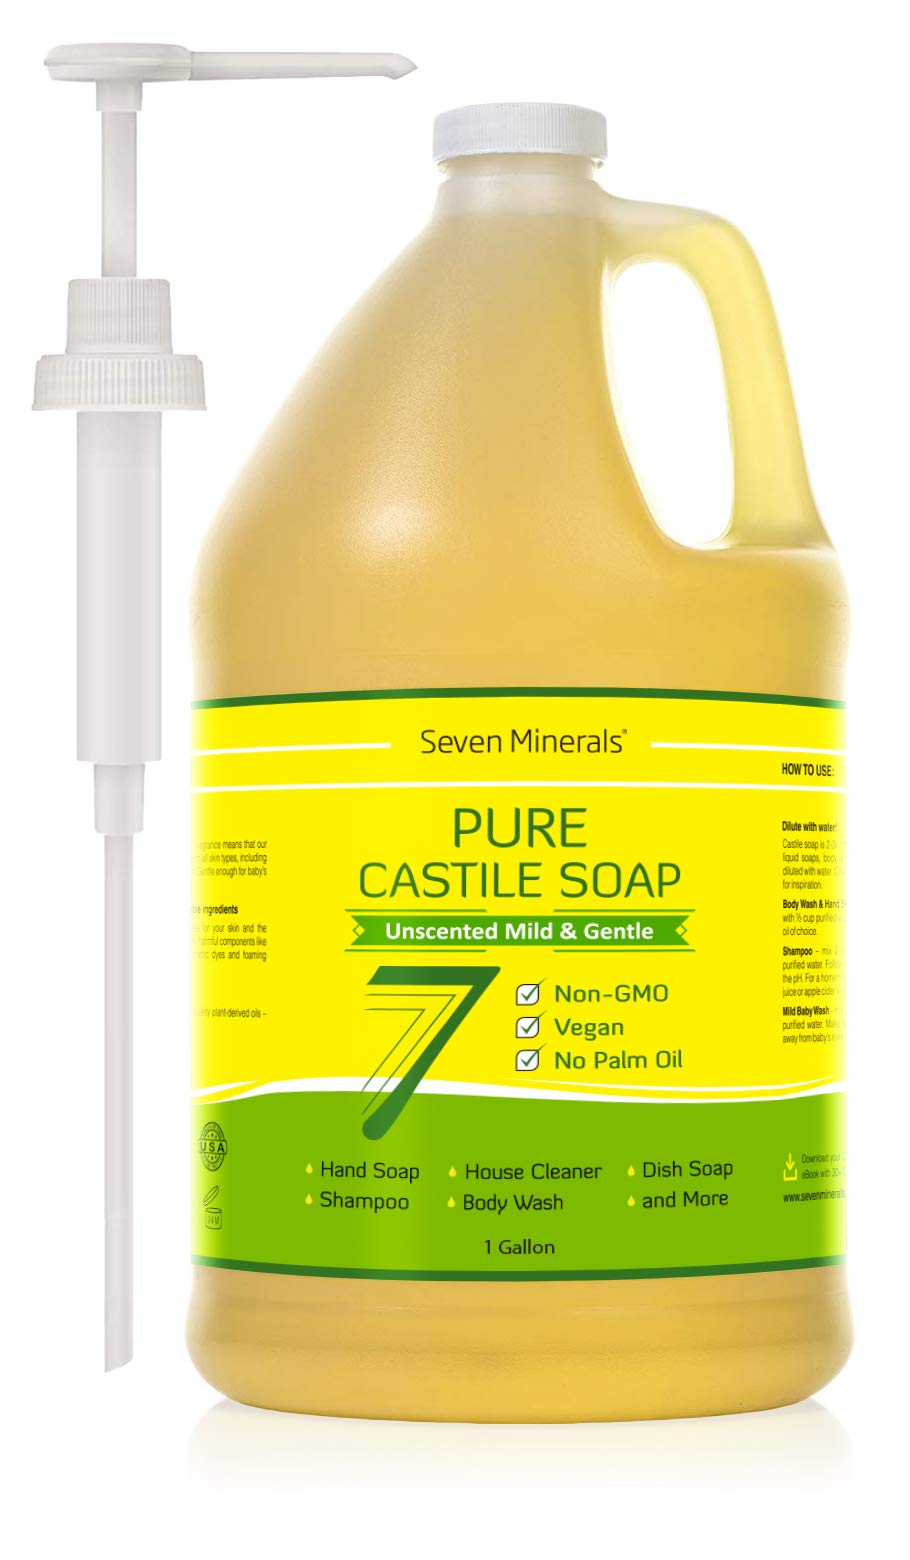 Pure Castile Soap - 1 Gallon - No Palm Oil - Unscented Mild & Gentle Liquid Soap For Sensitive Skin, Baby Wash & Your Own DIY Recipes - All Natural, Non GMO & Vegan Formula with Organic Carrier Oils